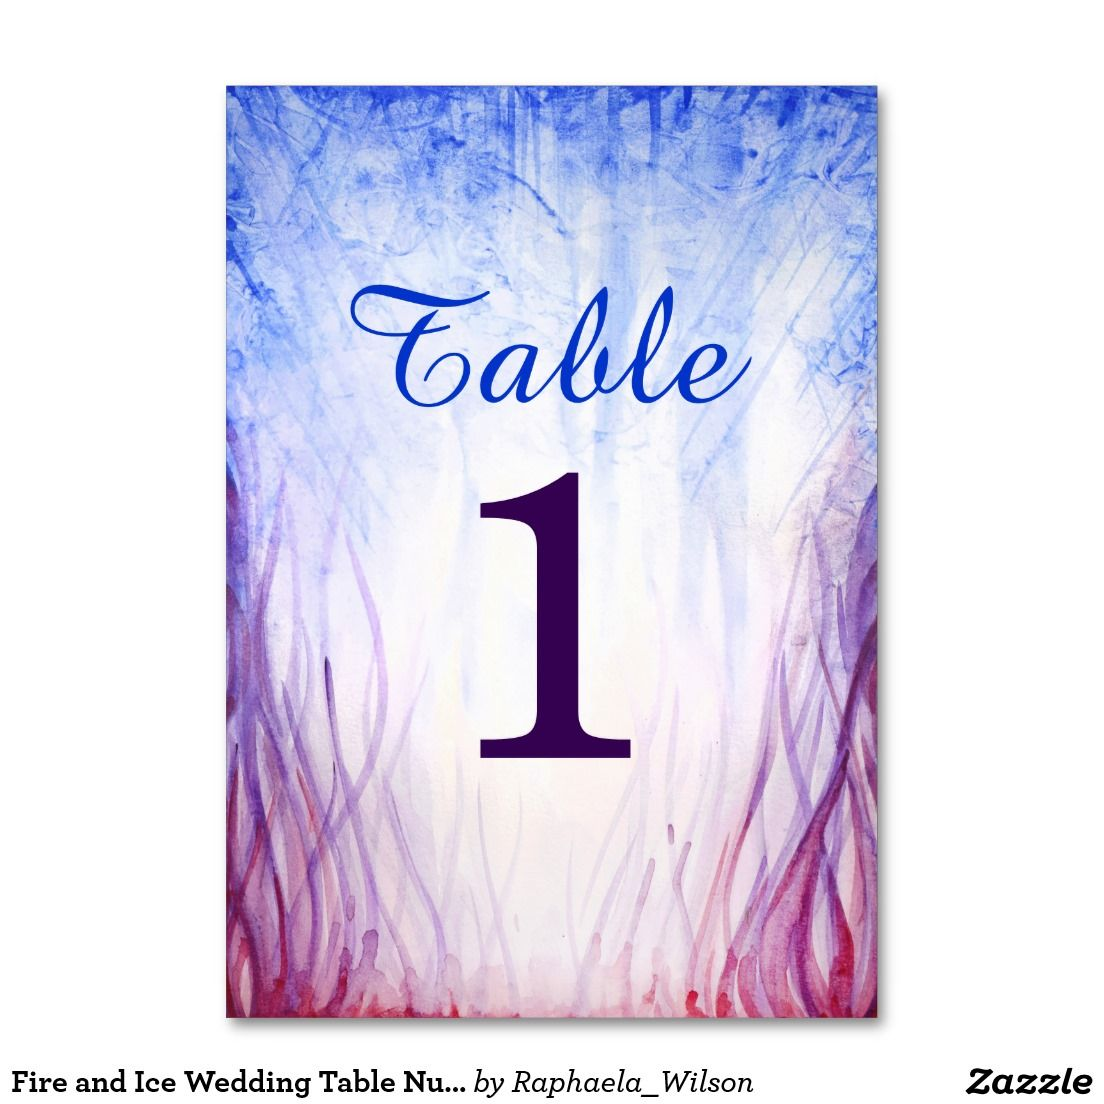 Fire and Ice Wedding Table Number Cards | Pinterest | Wedding tables ...